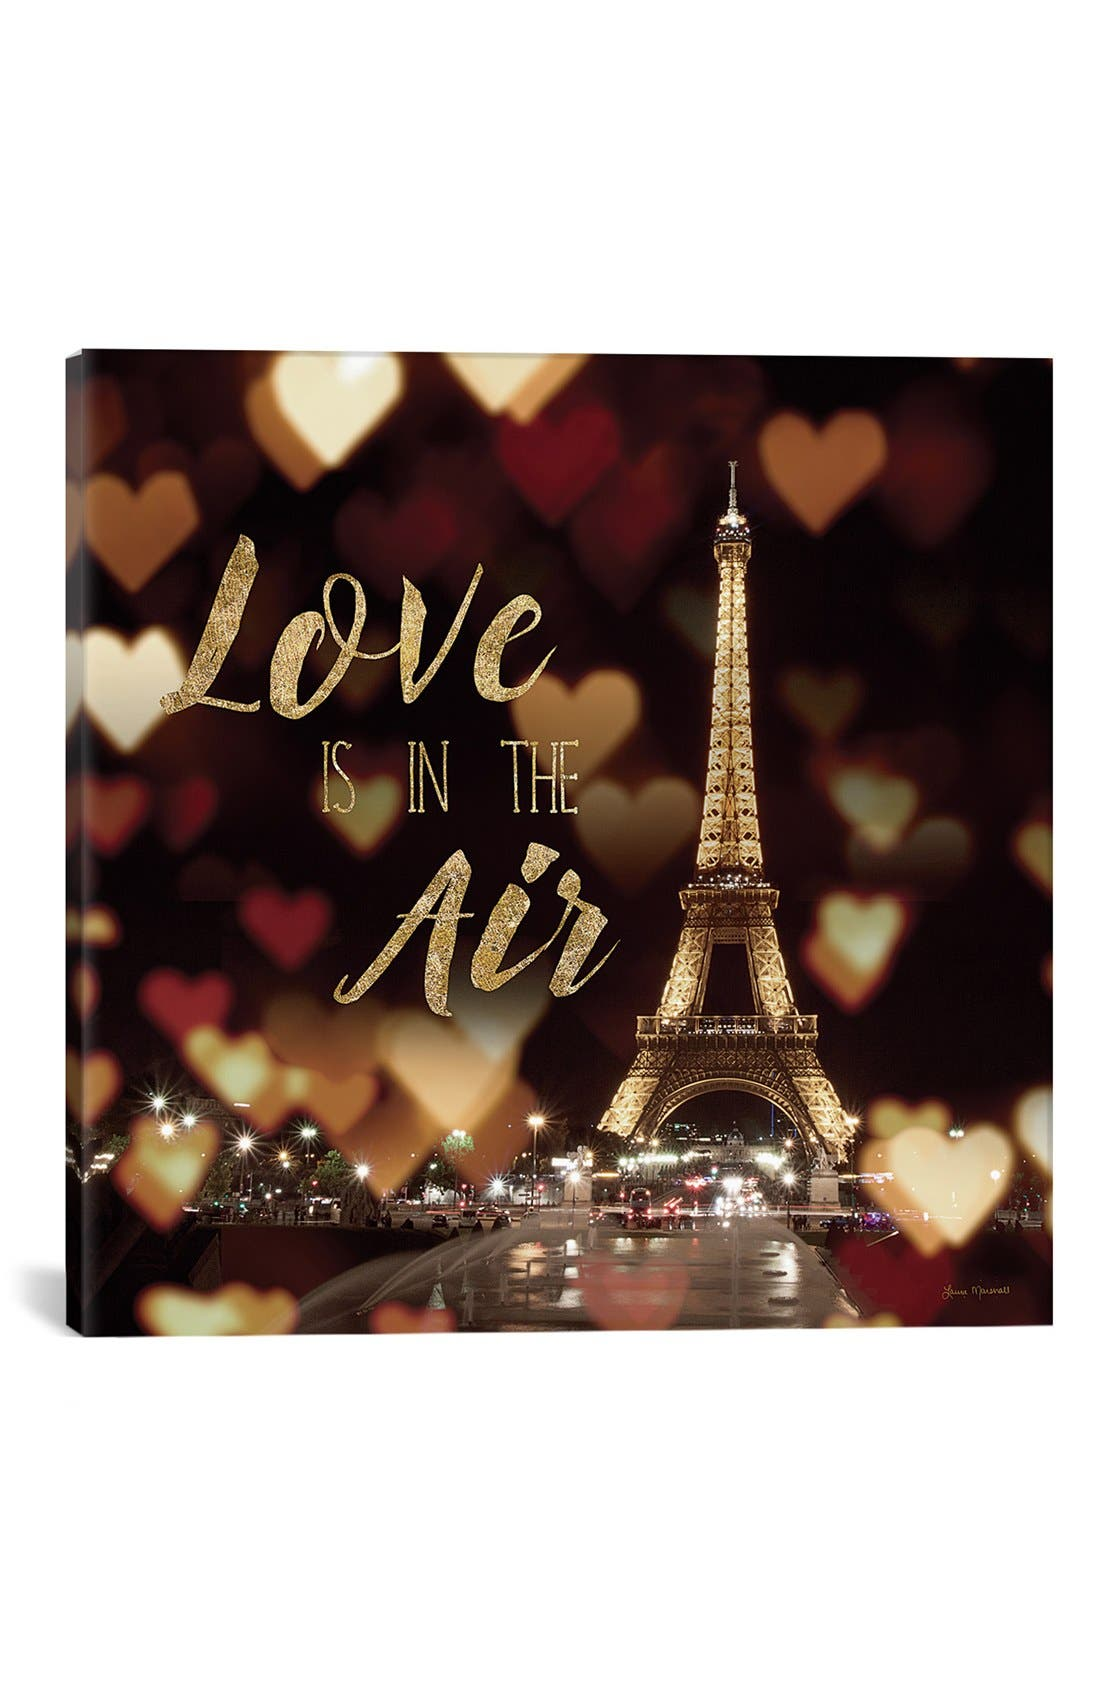 Alternate Image 1 Selected - iCanvas 'Love is in the Air' Giclée Print Canvas Art